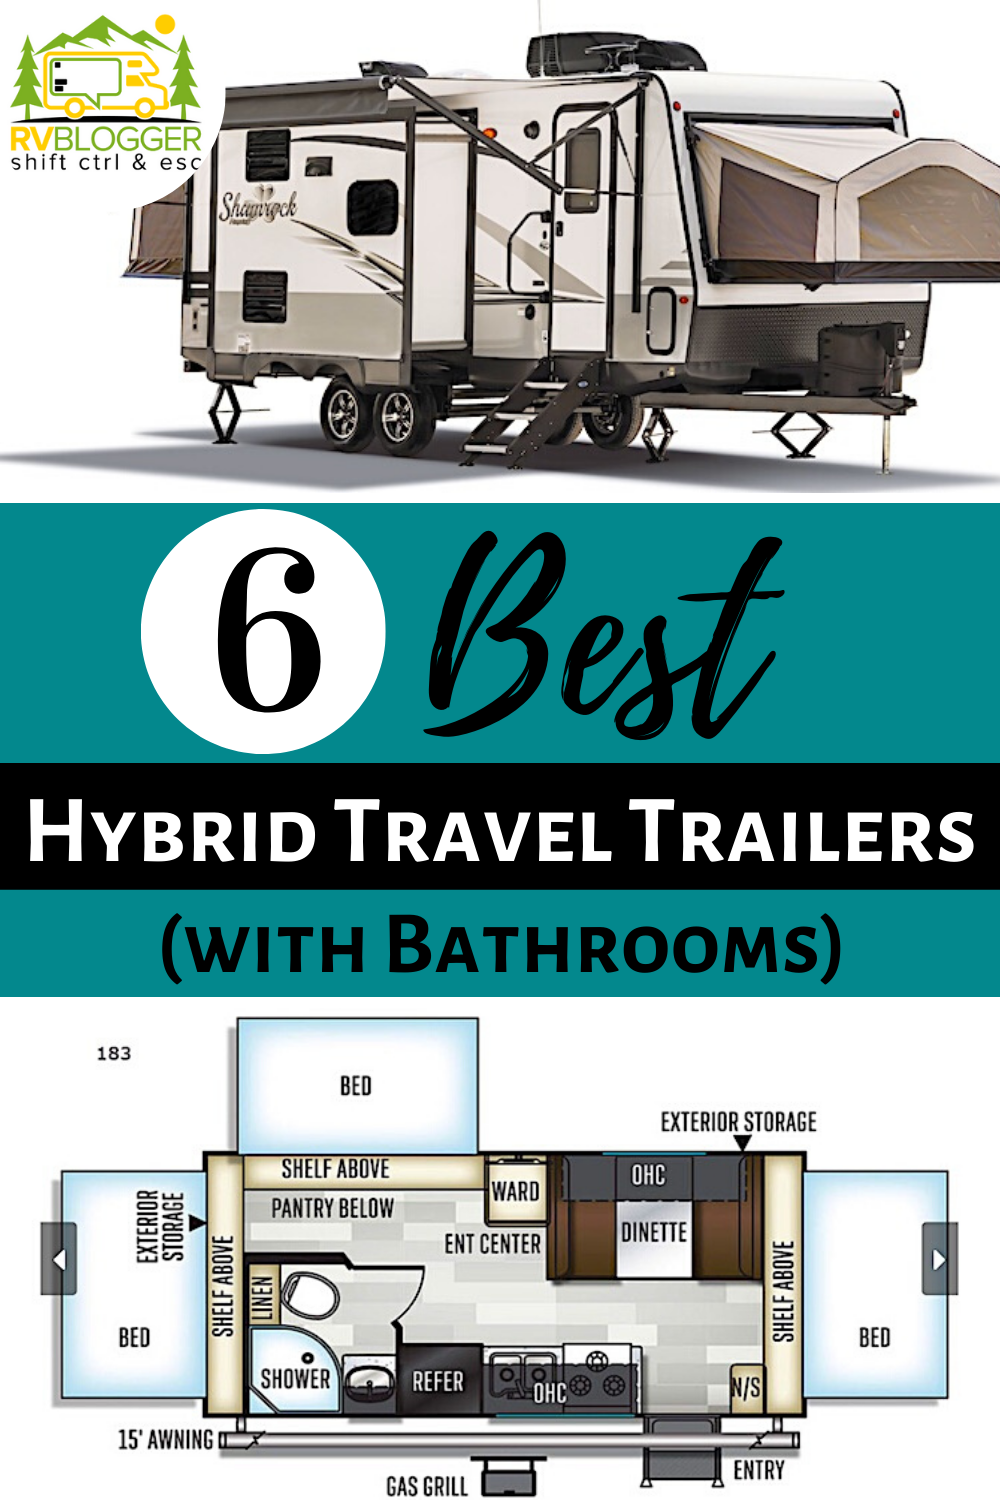 6 Best Hybrid Travel Trailers With Bathrooms Rvblogger In 2020 Hybrid Travel Trailers Travel Trailer Floor Plans Travel Trailer